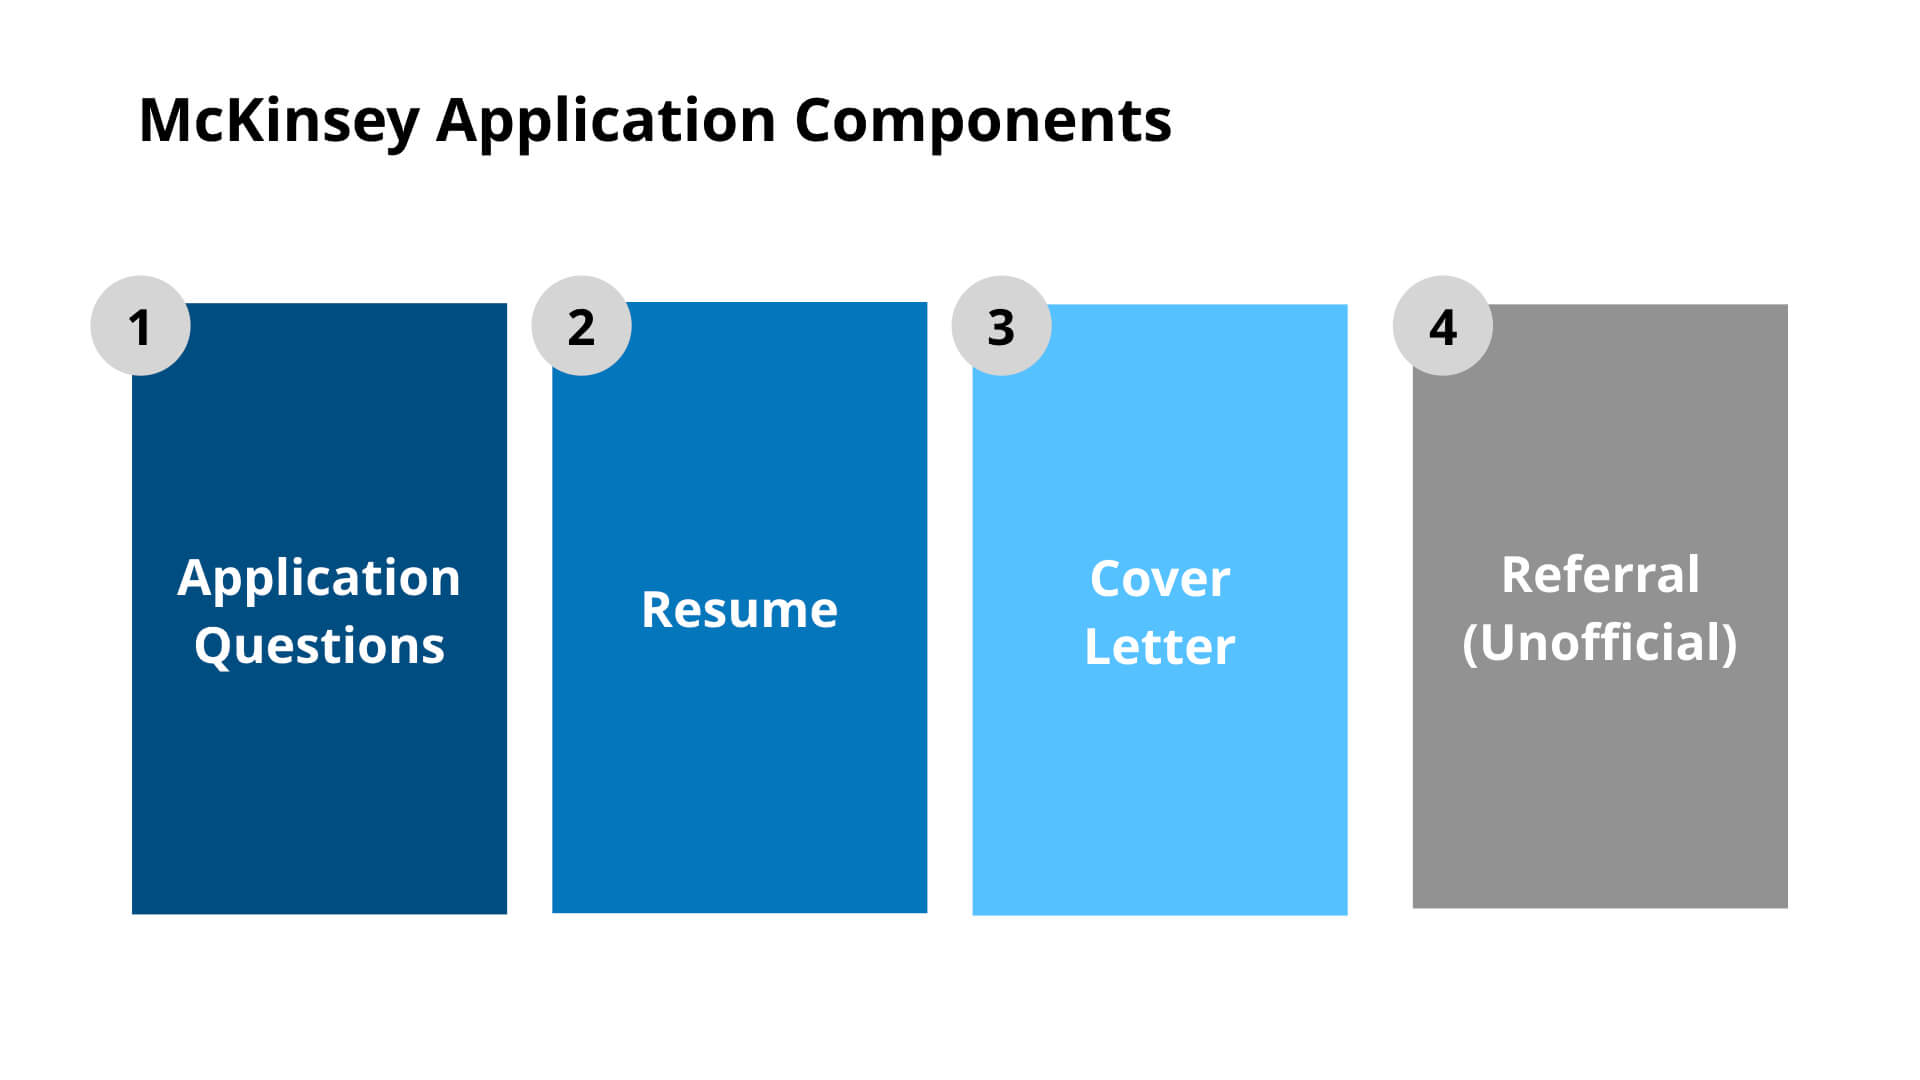 McKinsey Application Components